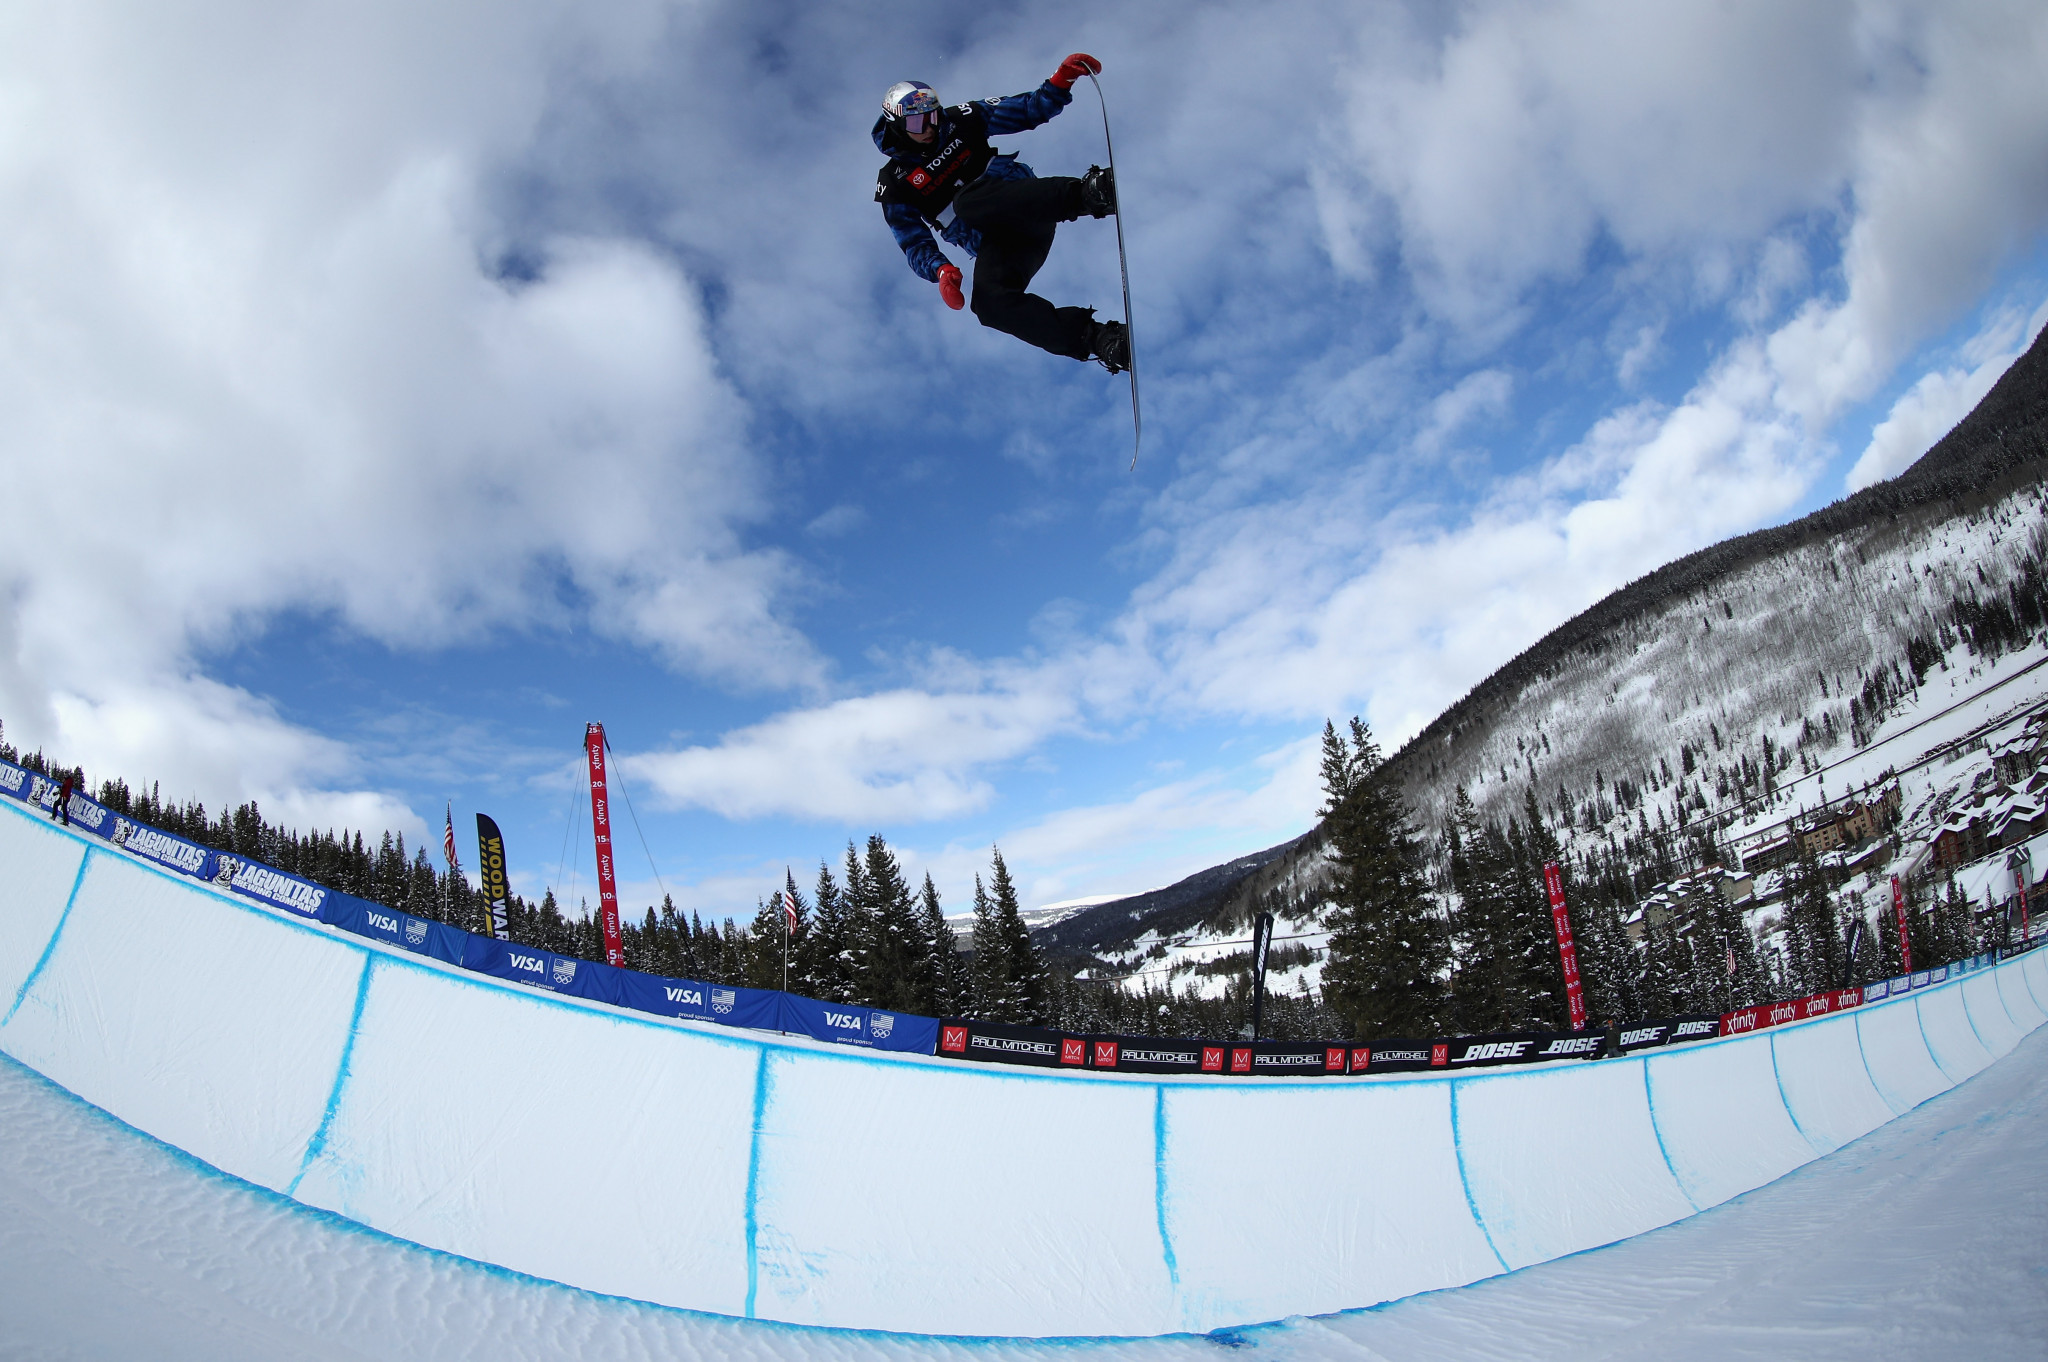 Australia's Scotty James was the stand-out performer in the men's halfpipe qualification round ©Getty Images